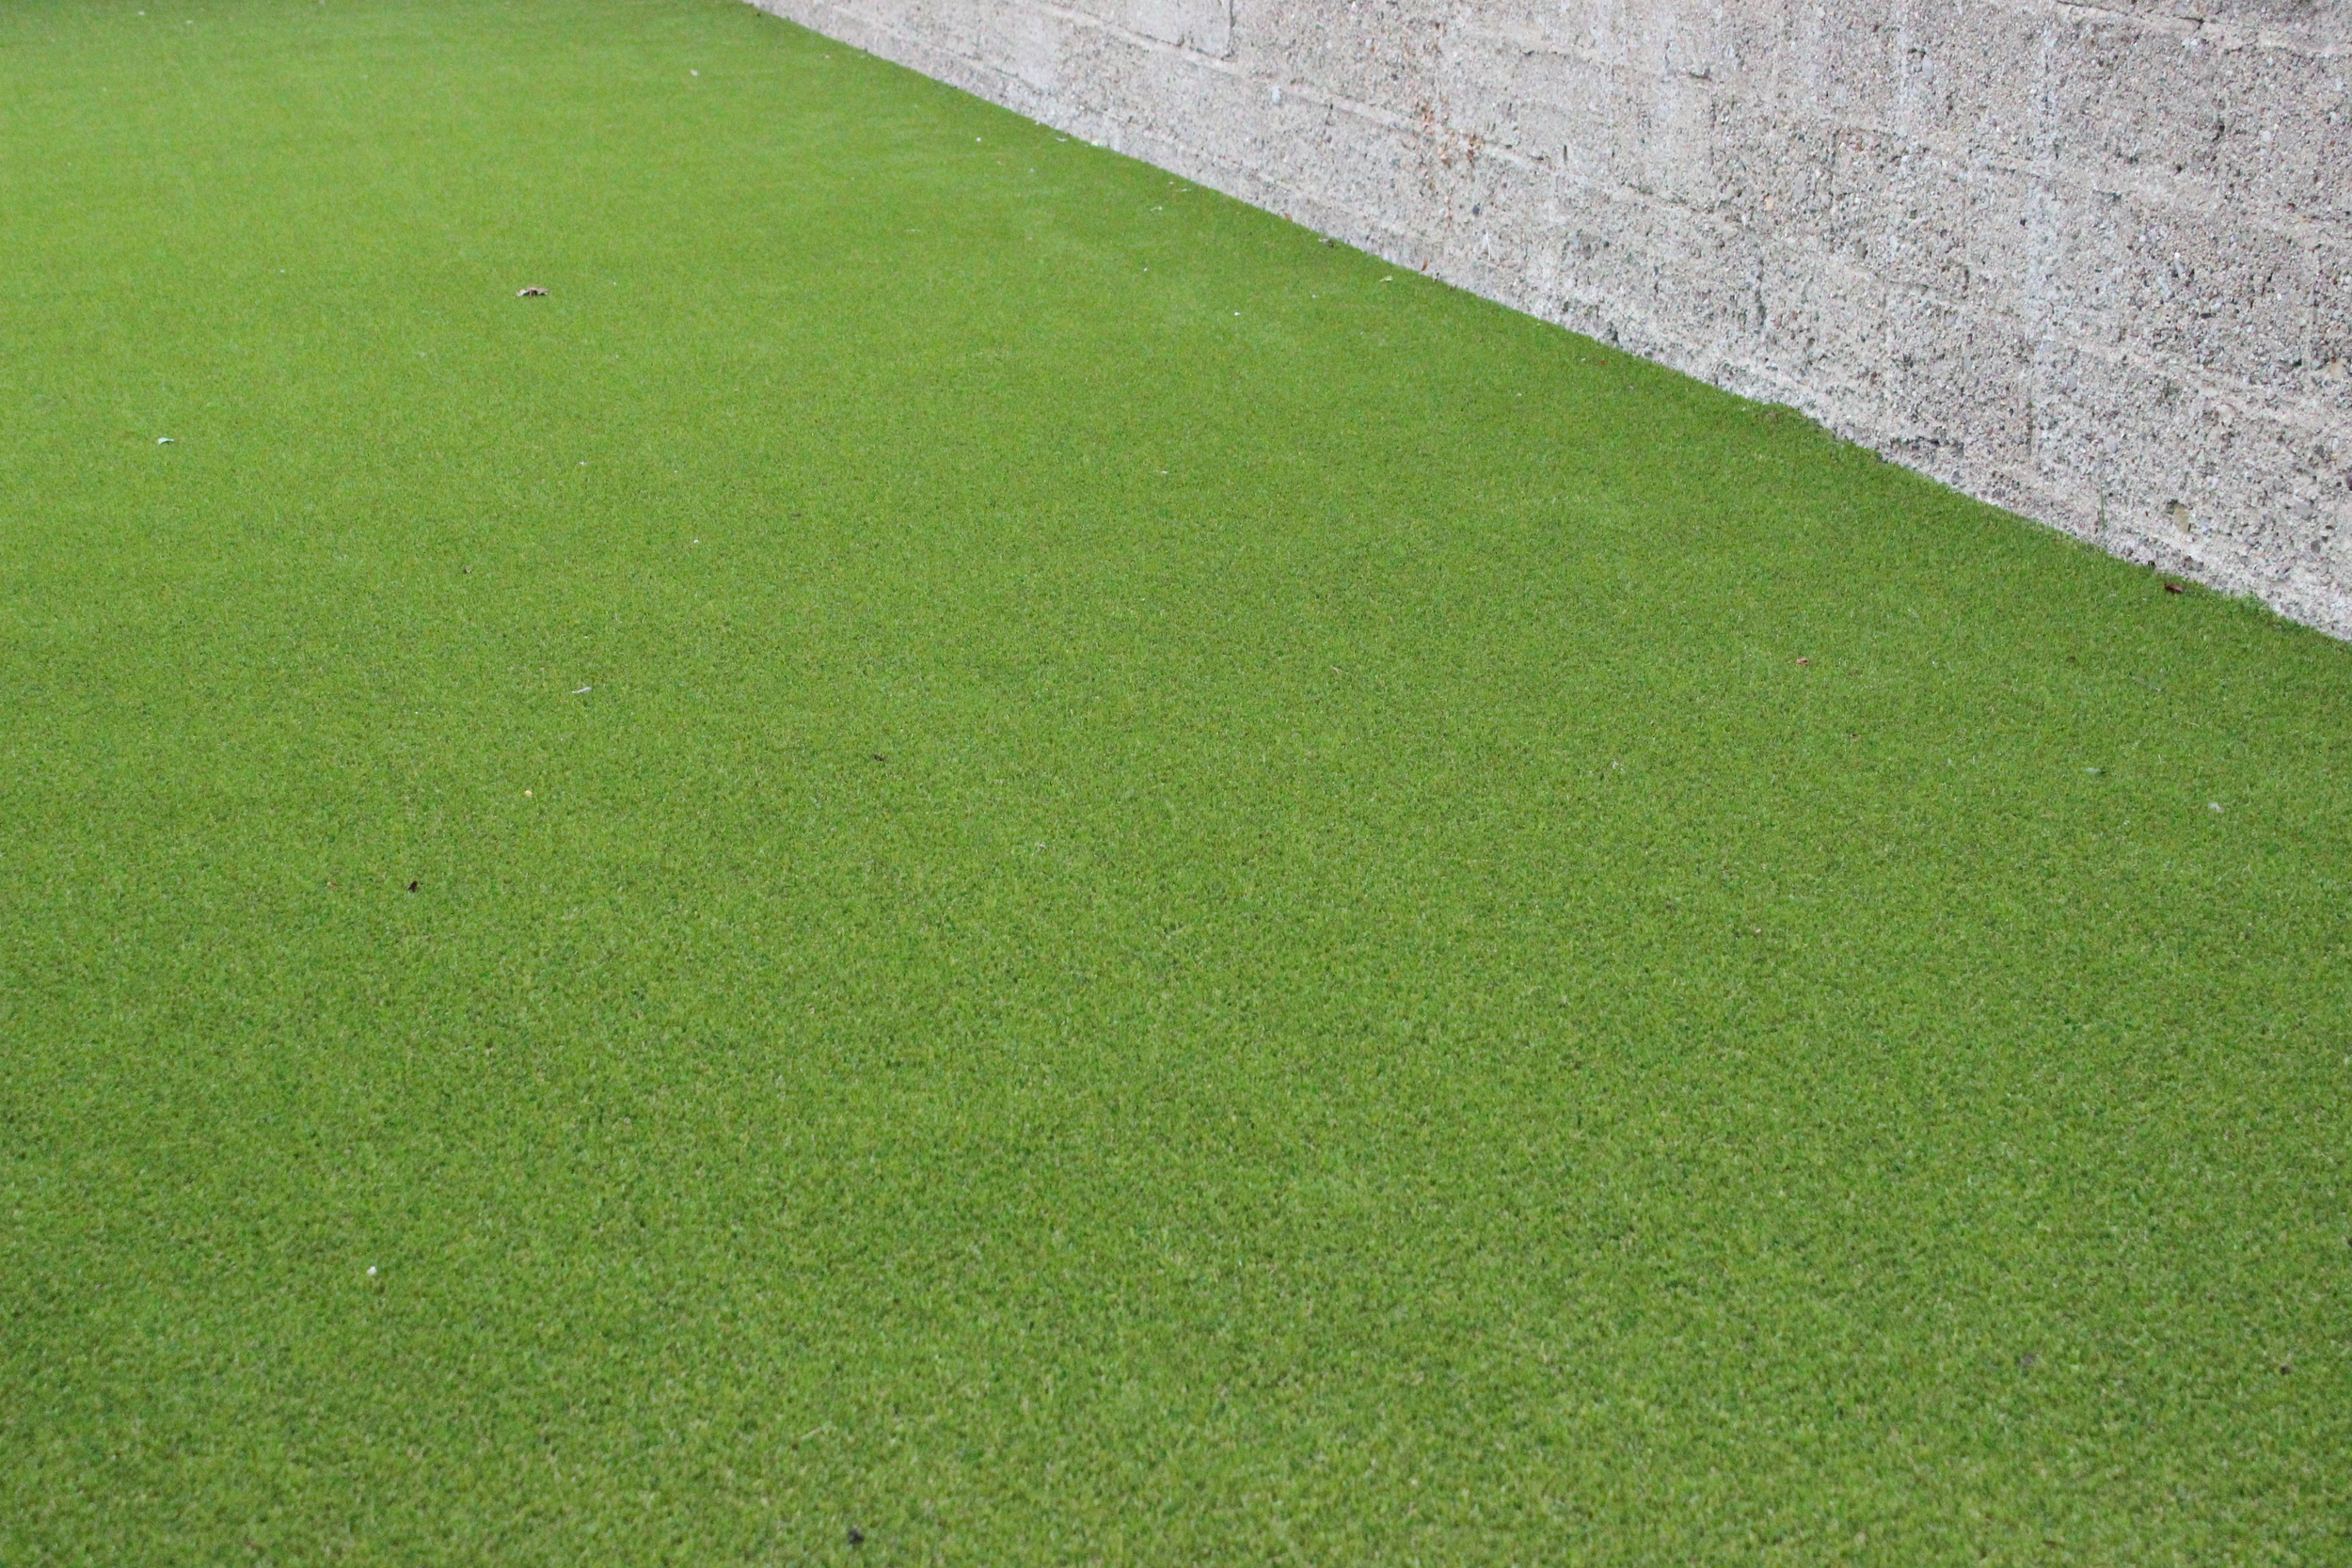 Green artificial lawn turf